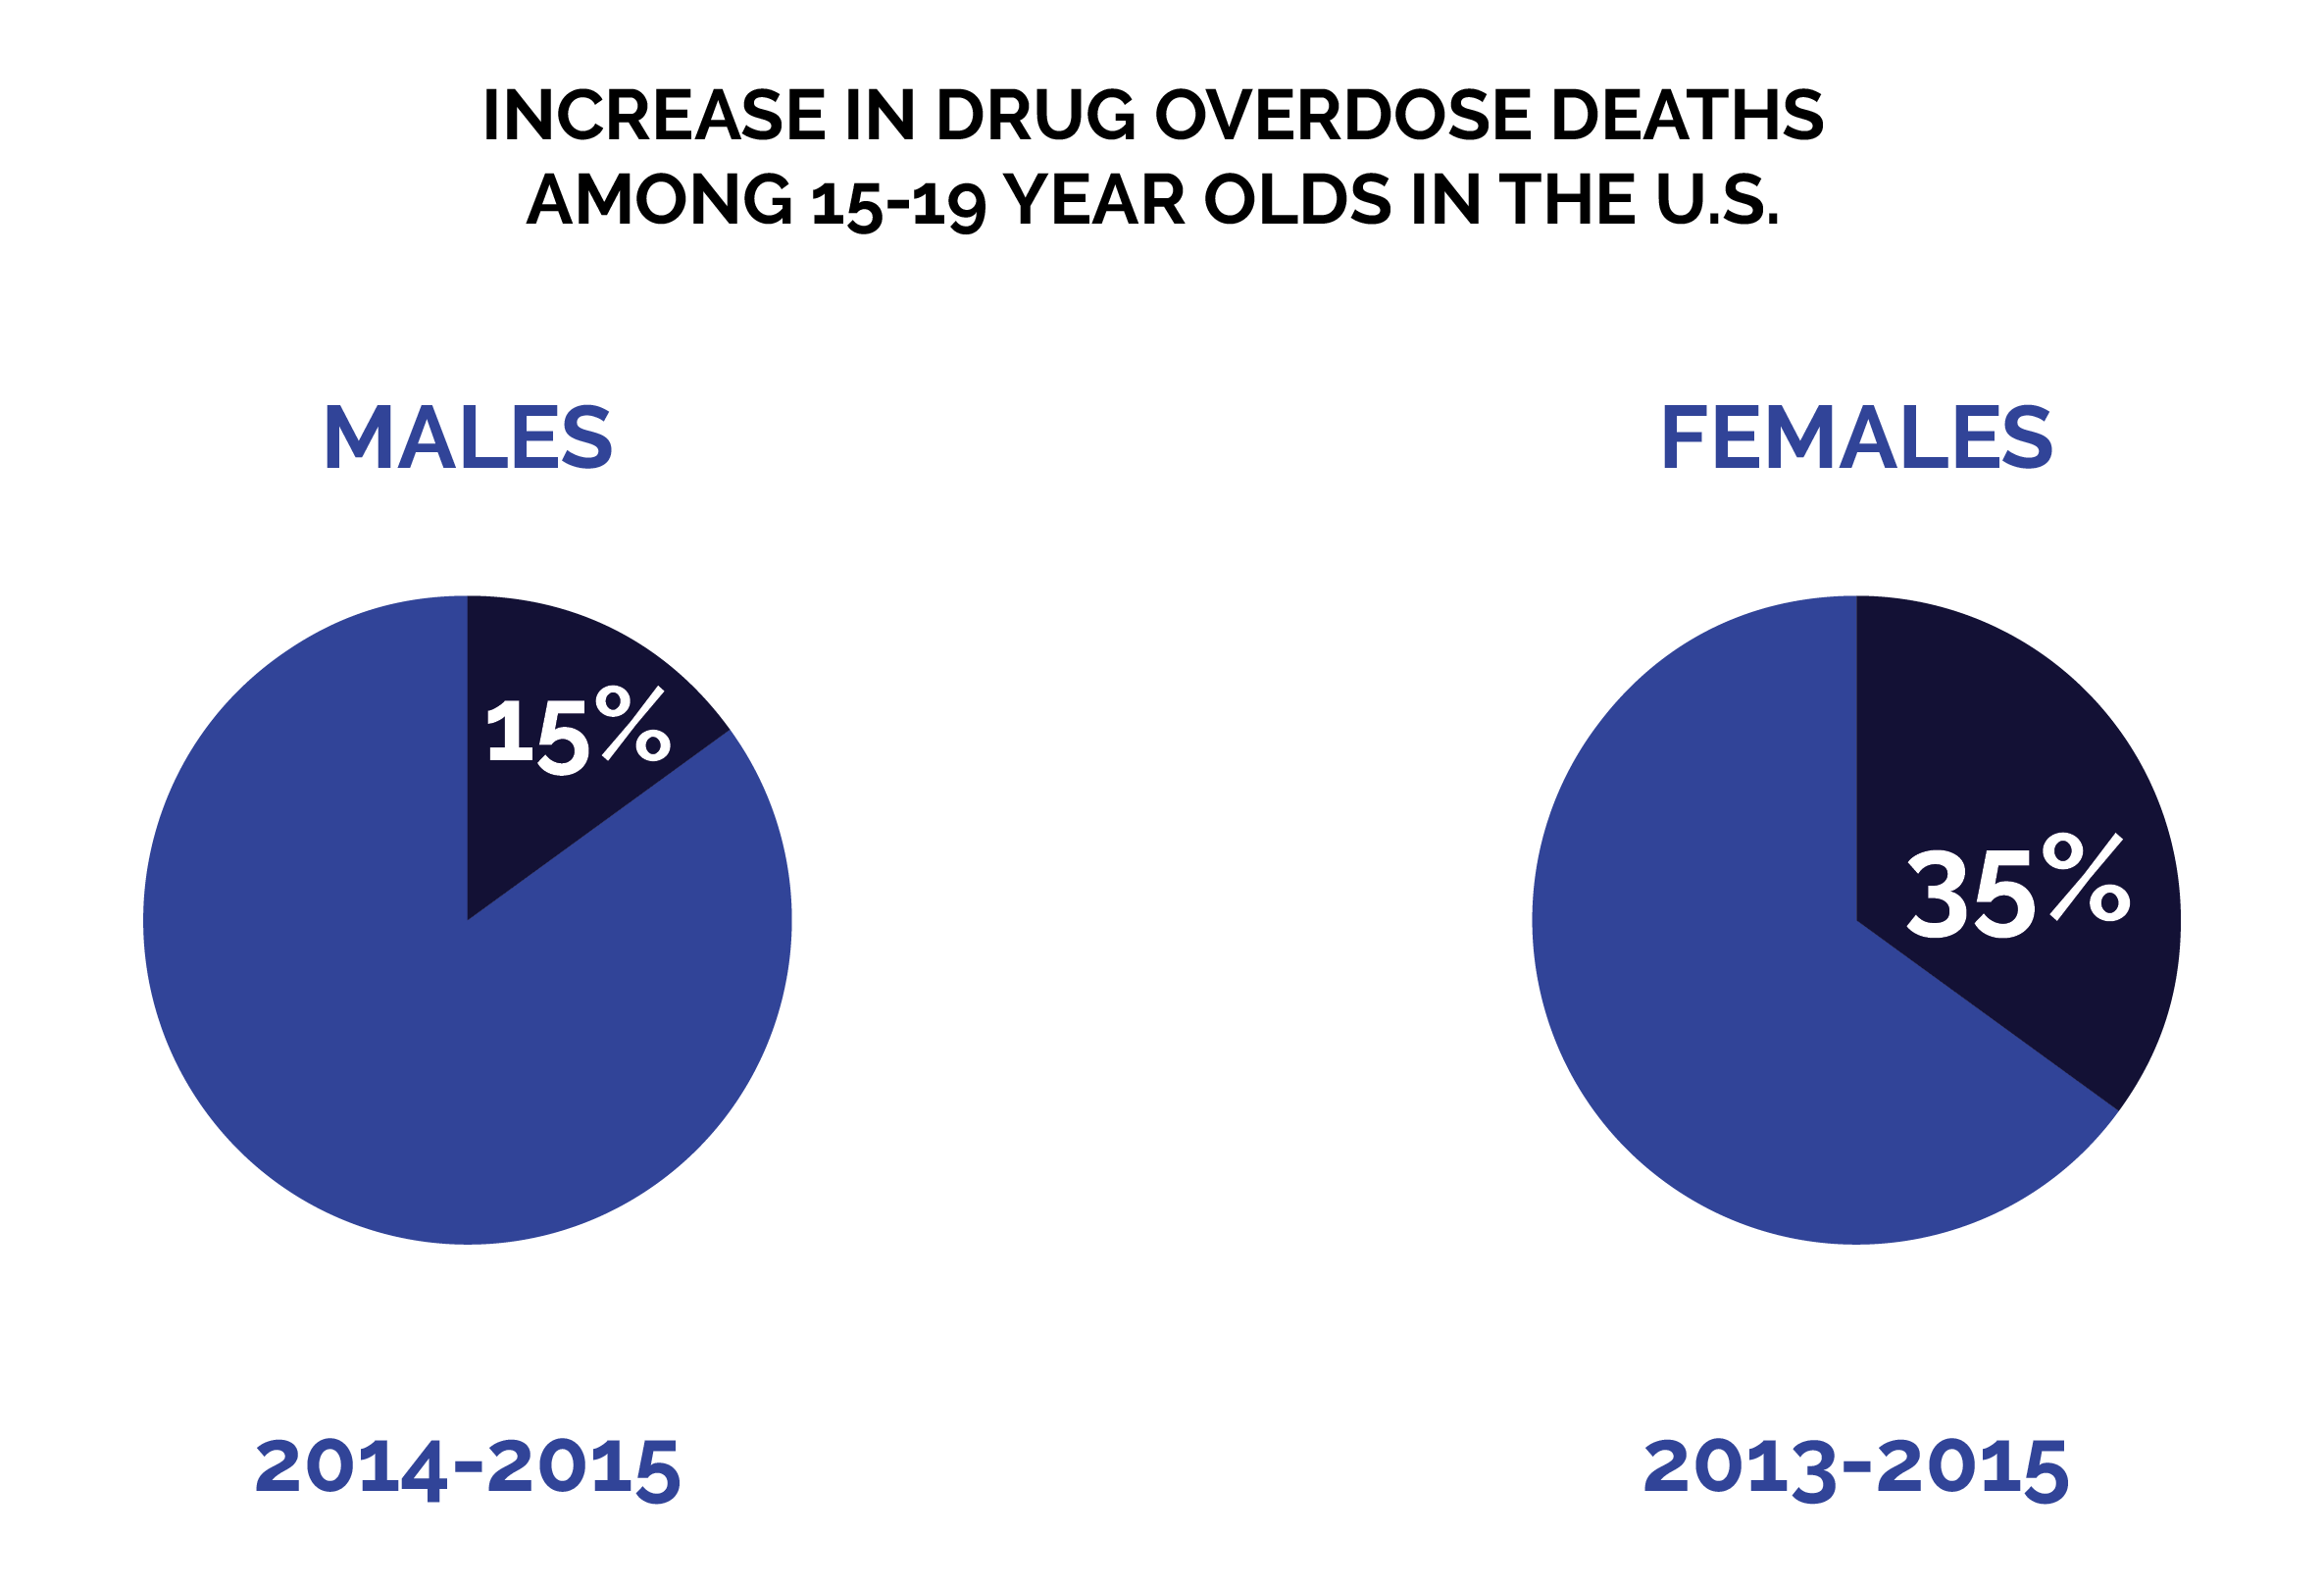 A Guide to Adolescent Substance Use Disorder in Santa Barbara County - Overdose Deaths